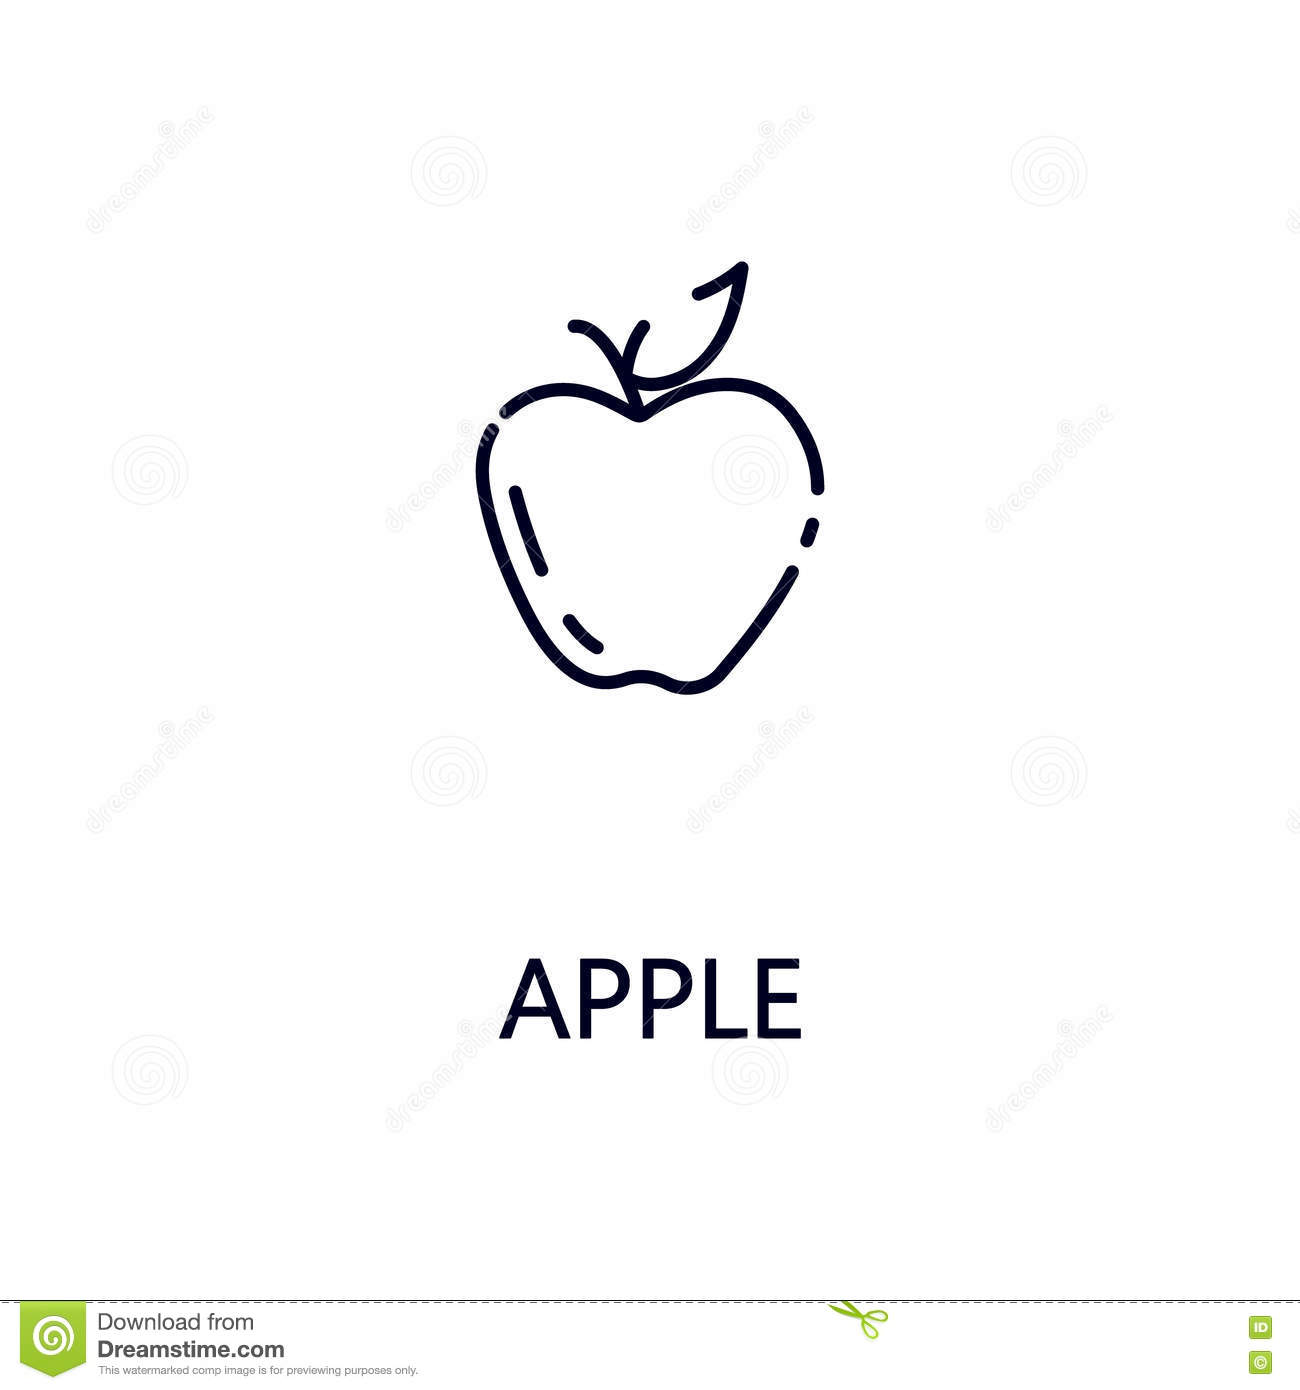 Heart flat icon single high city attorney cover letter apple line icon stock vector illustration of healthy 80366948 apple line icon flat single high quality outline symbol fruit web design mobile app thin signs buycottarizona Image collections